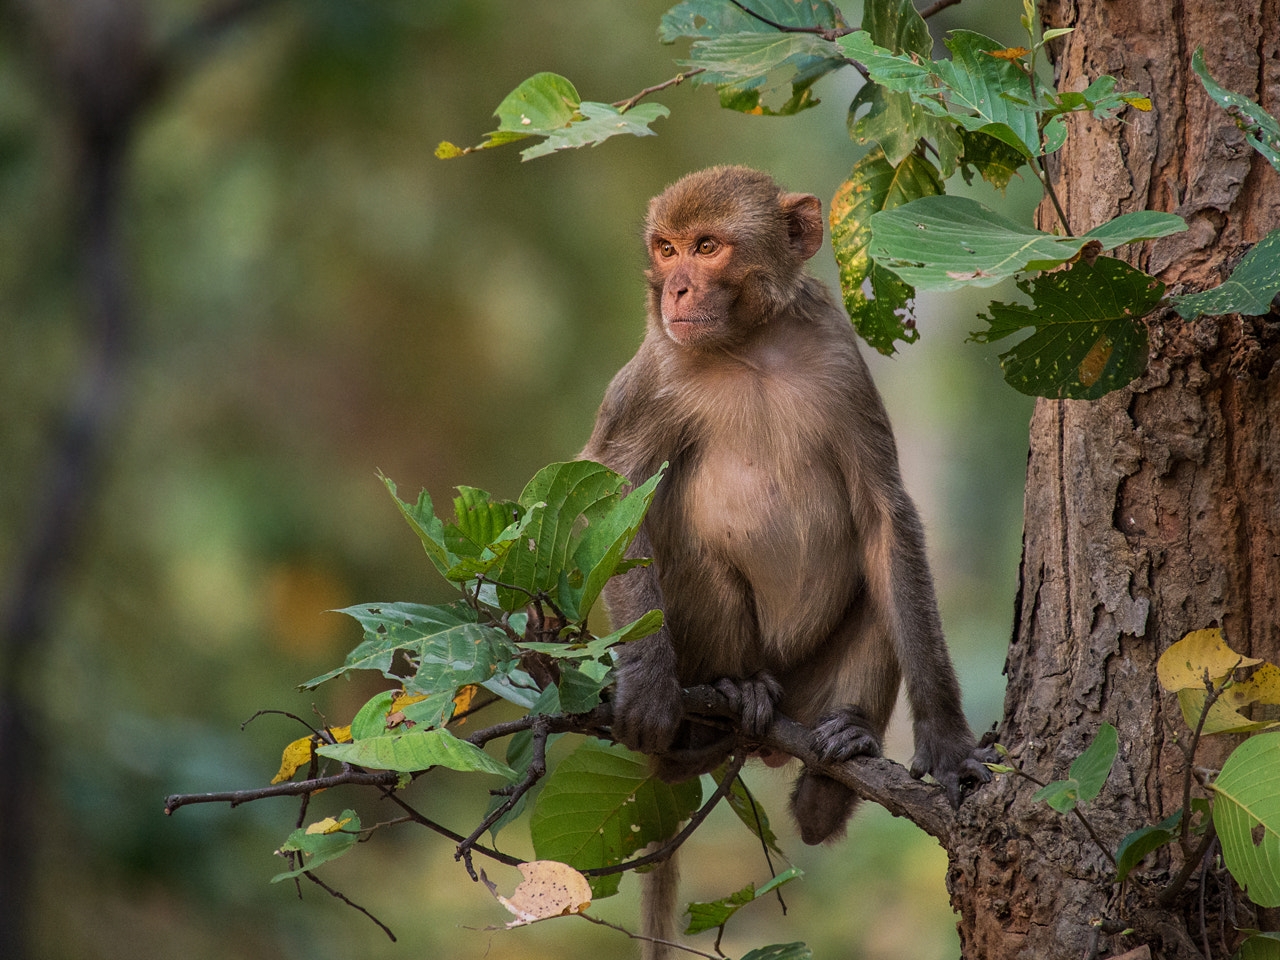 Photograph Rhesus macaque by Stefan Cruysberghs on 500px